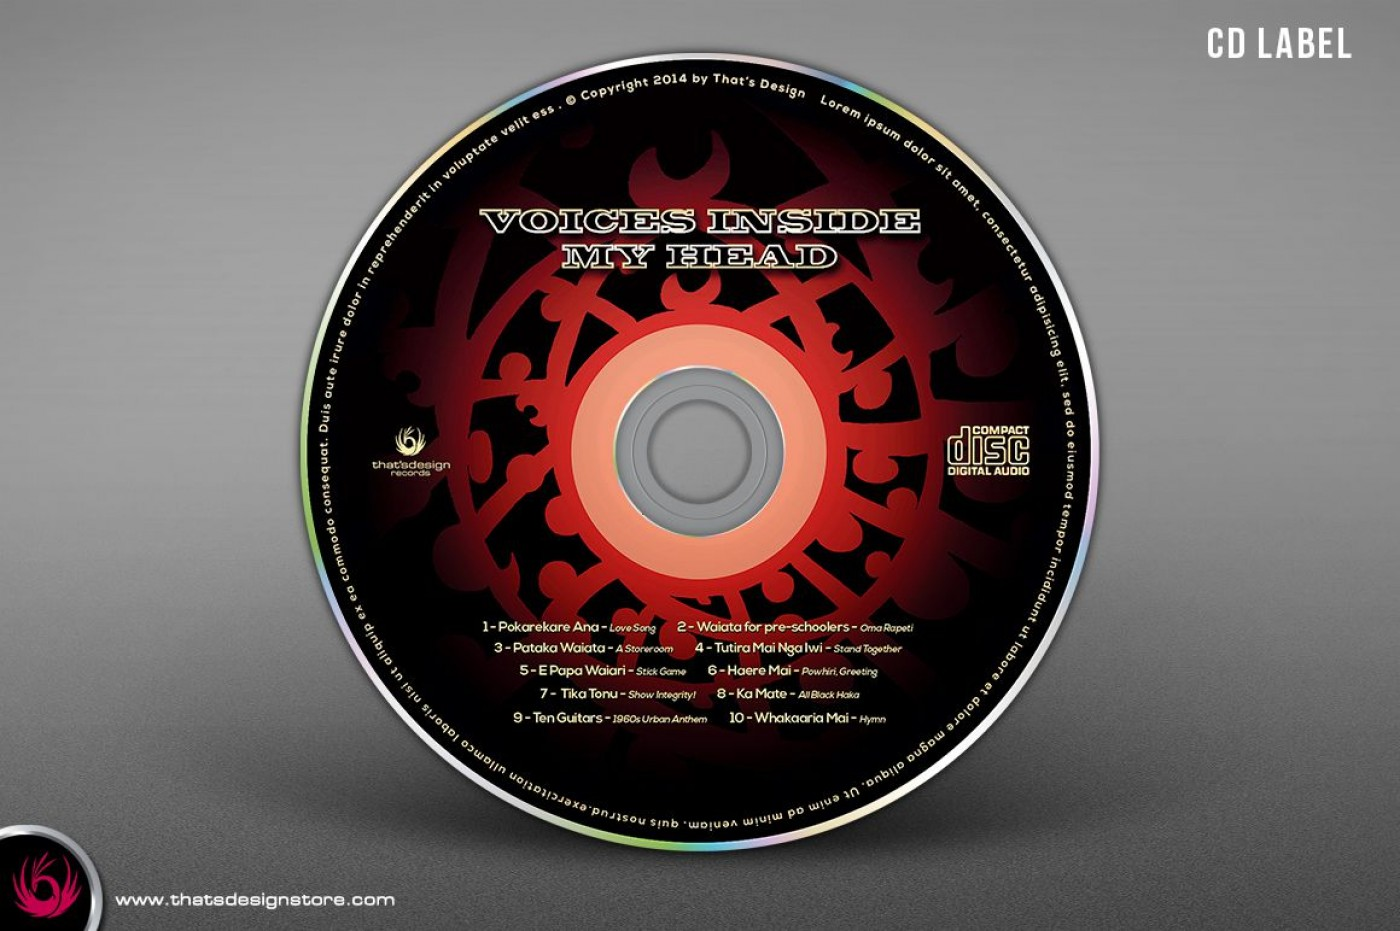 008 Excellent Cd Design Template Photoshop Photo  Label Psd Free Download Cover1400